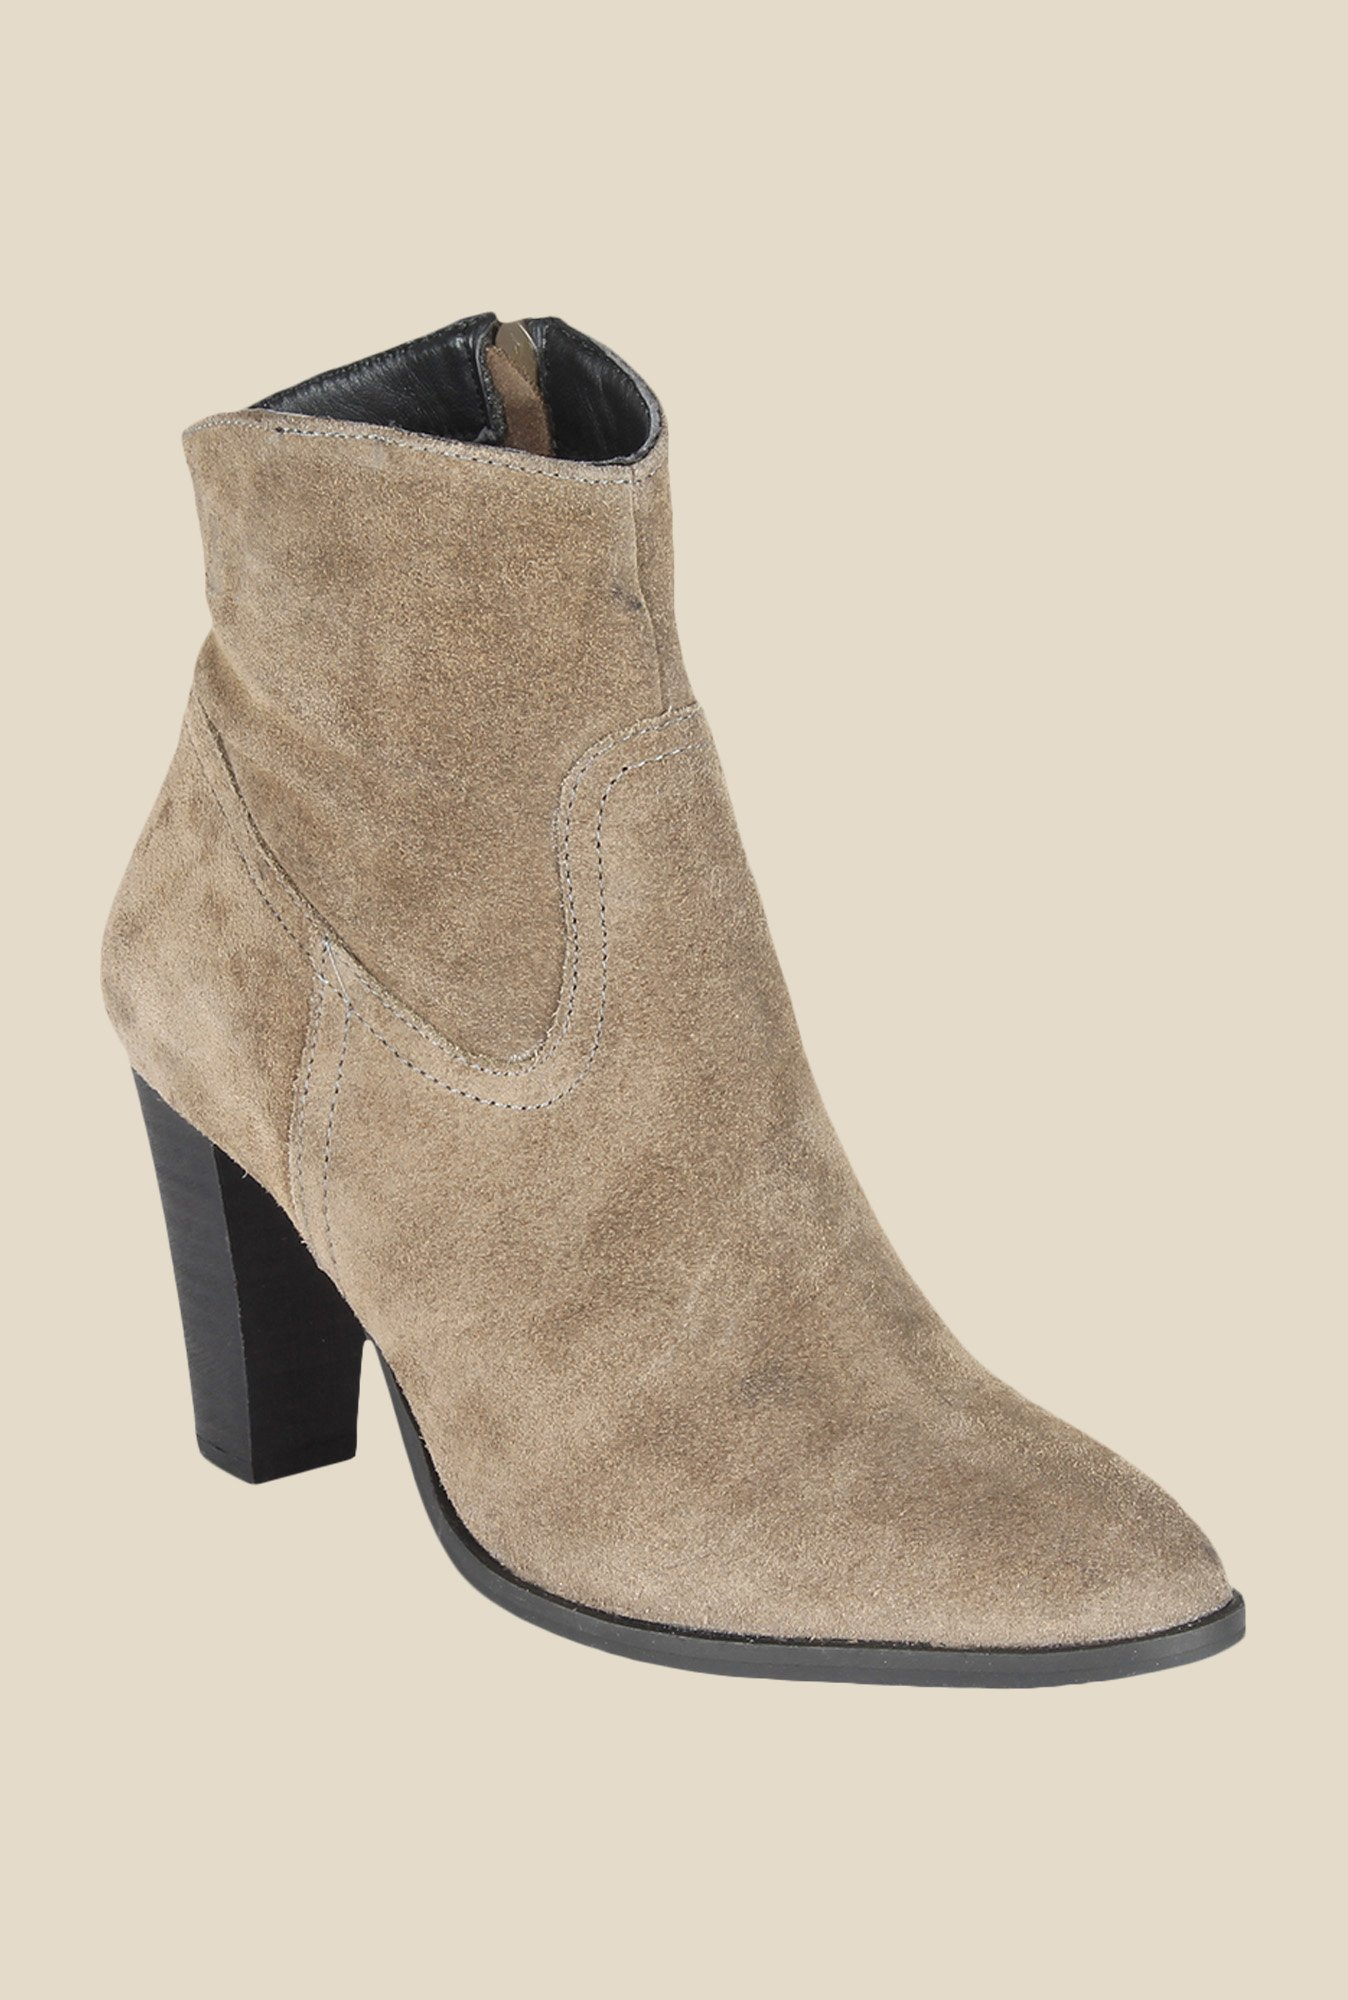 Salt 'n' Pepper Star Camel Casual Boots